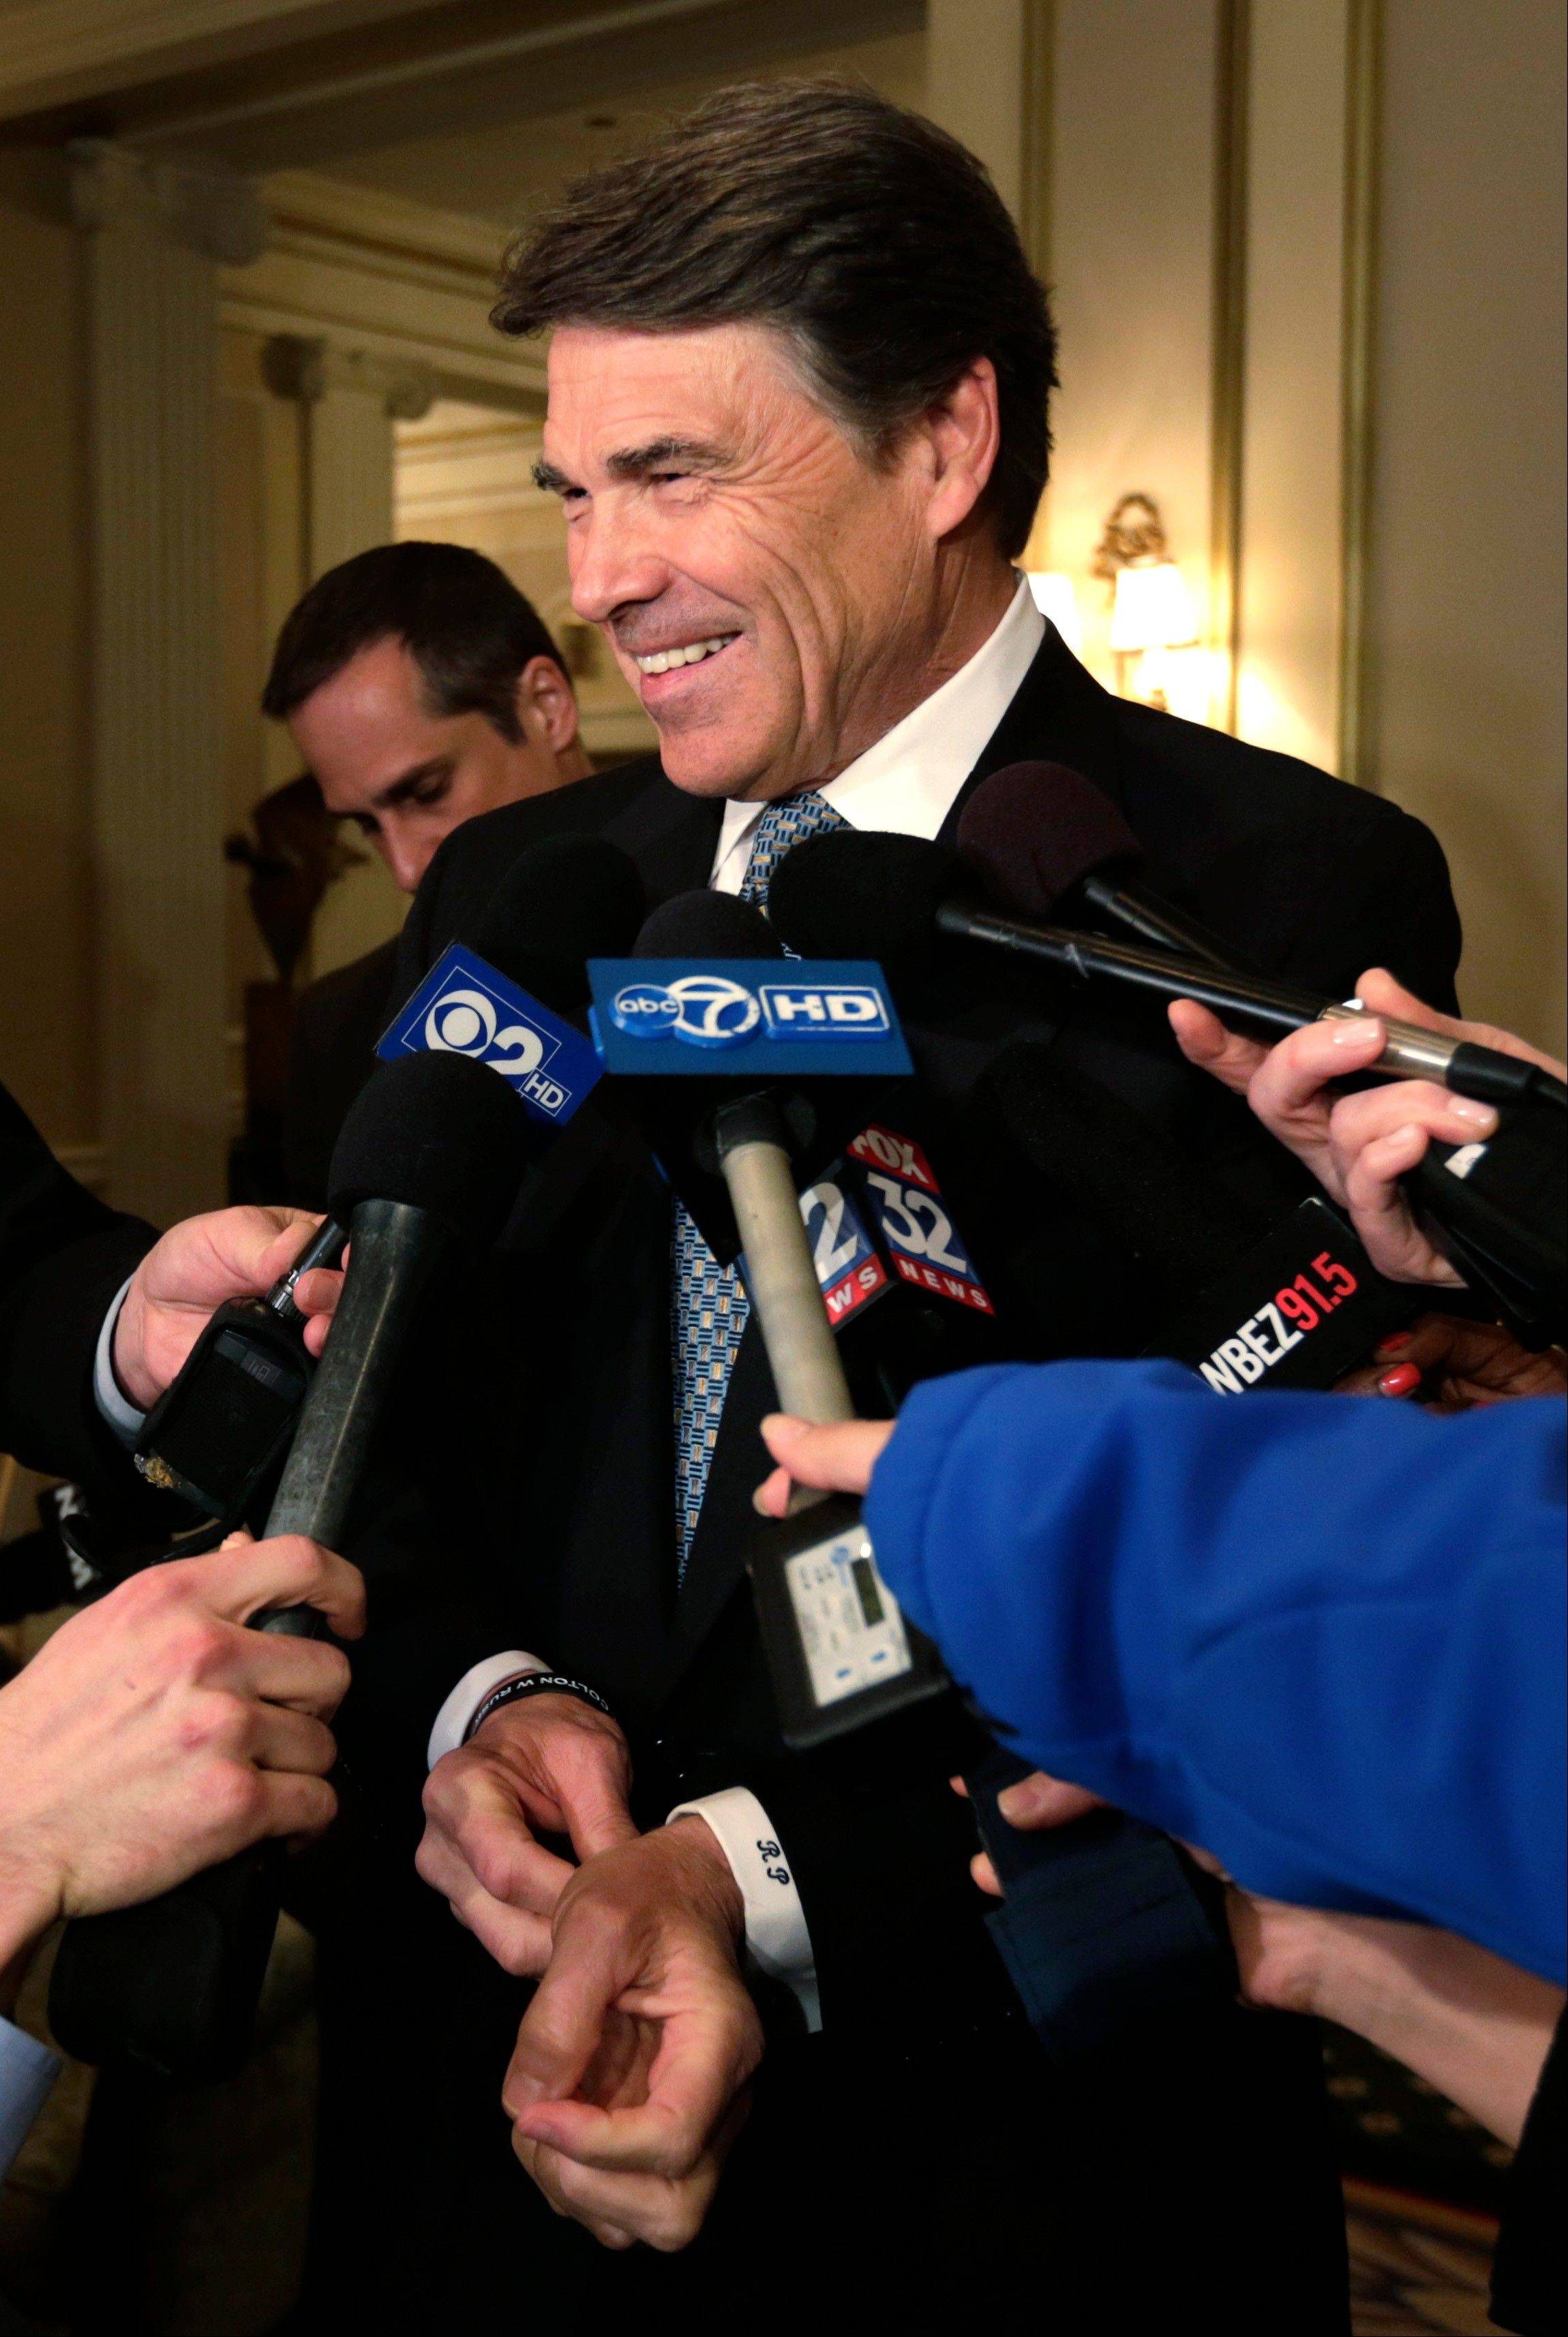 Texas Gov. Rick Perry meets with members media on Monday in Chicago as he visits Illinois to spark competition by luring businesses away from the state. In promoting his state's business environment, Perry says Texas is cheaper and has less regulation.